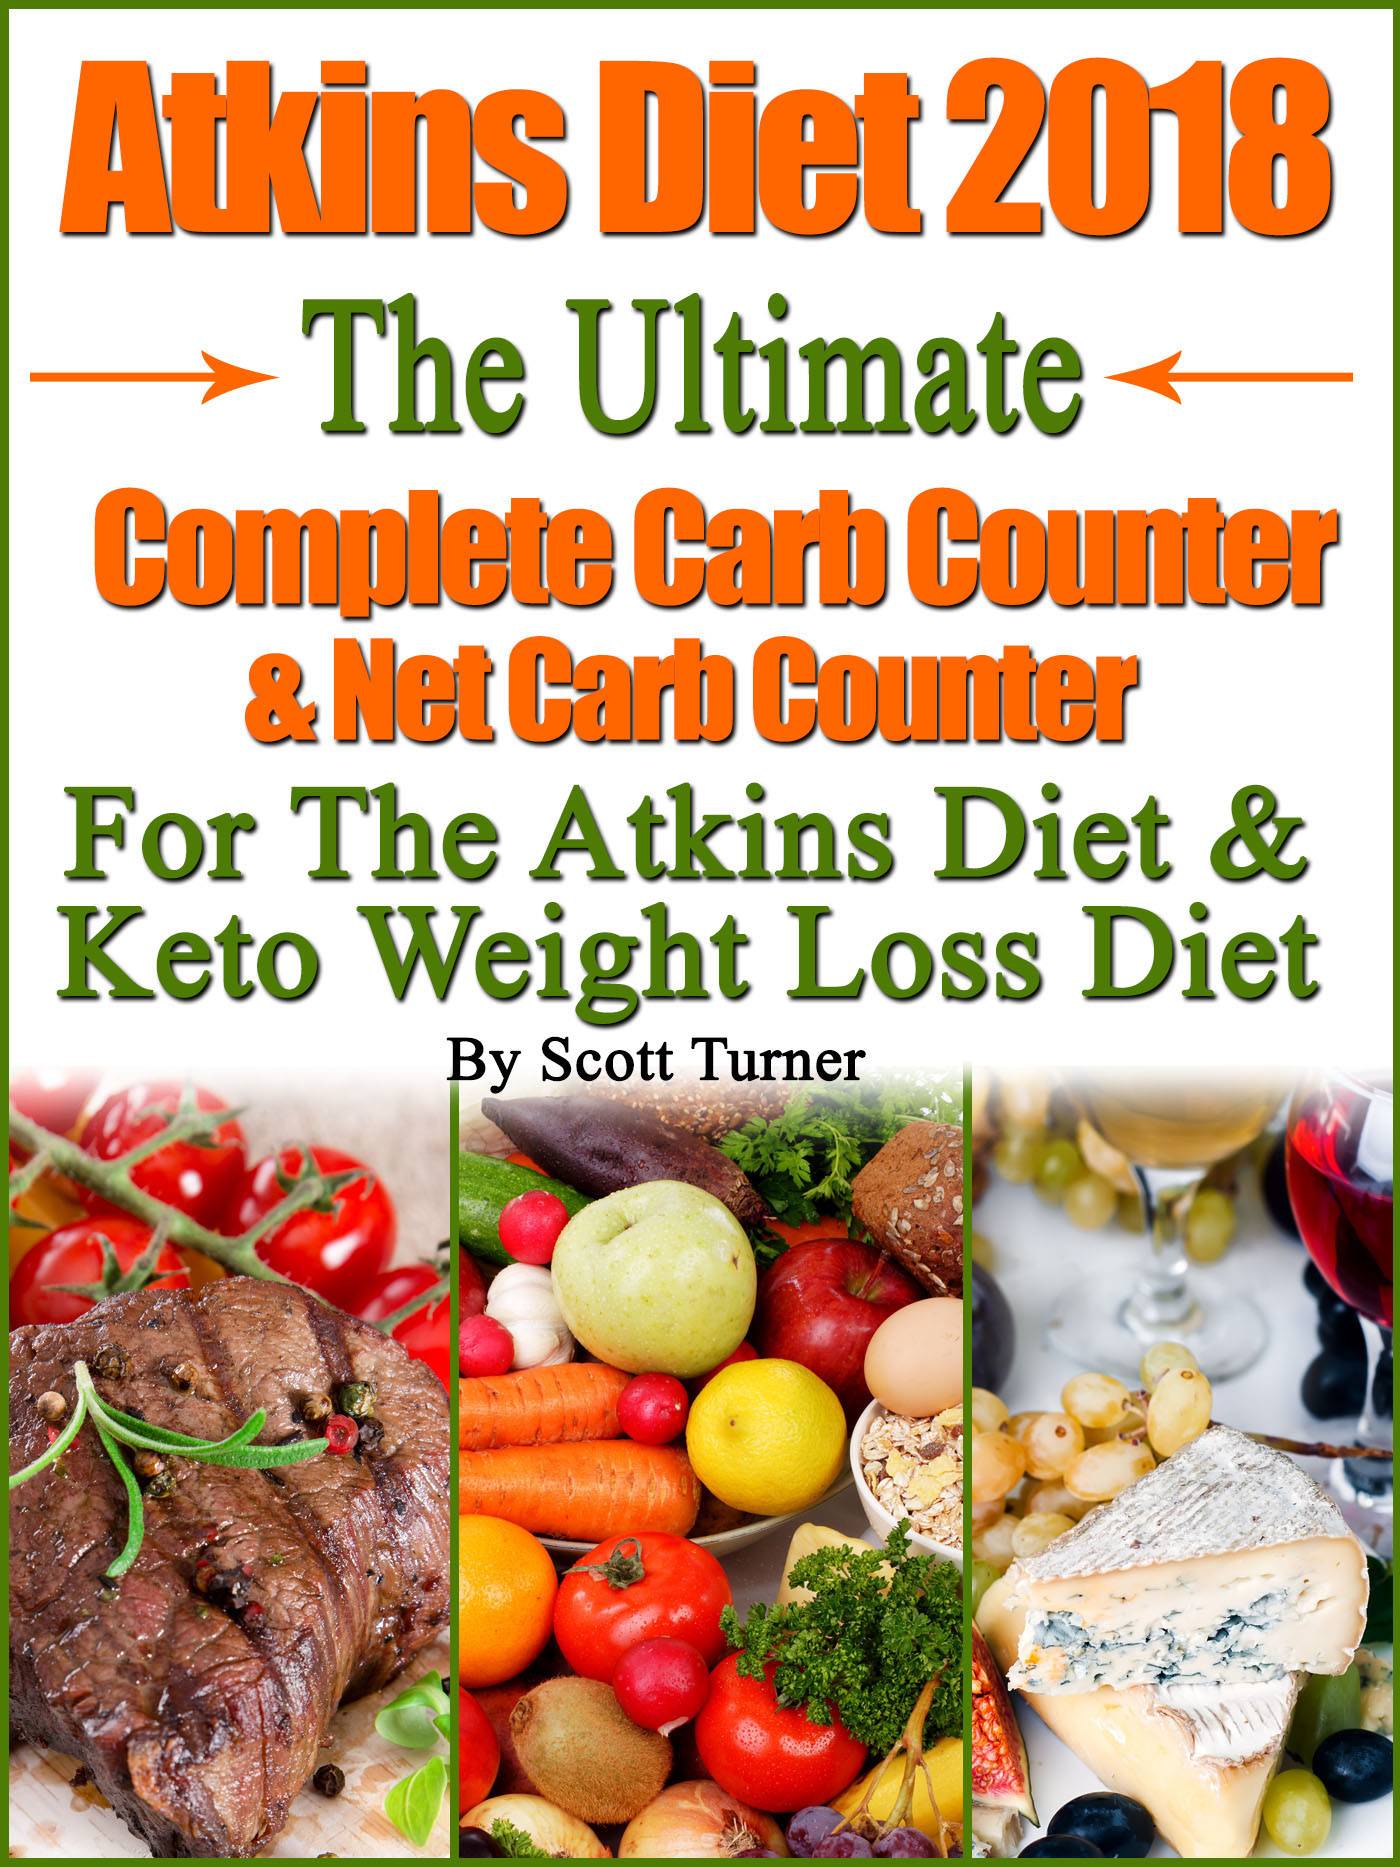 Atkins Diet 2018 The Ultimate Complete Carb Counter & Net Carb Counter For  The Atkins Diet & Keto Weight Loss Diet, an Ebook by Scott Turner